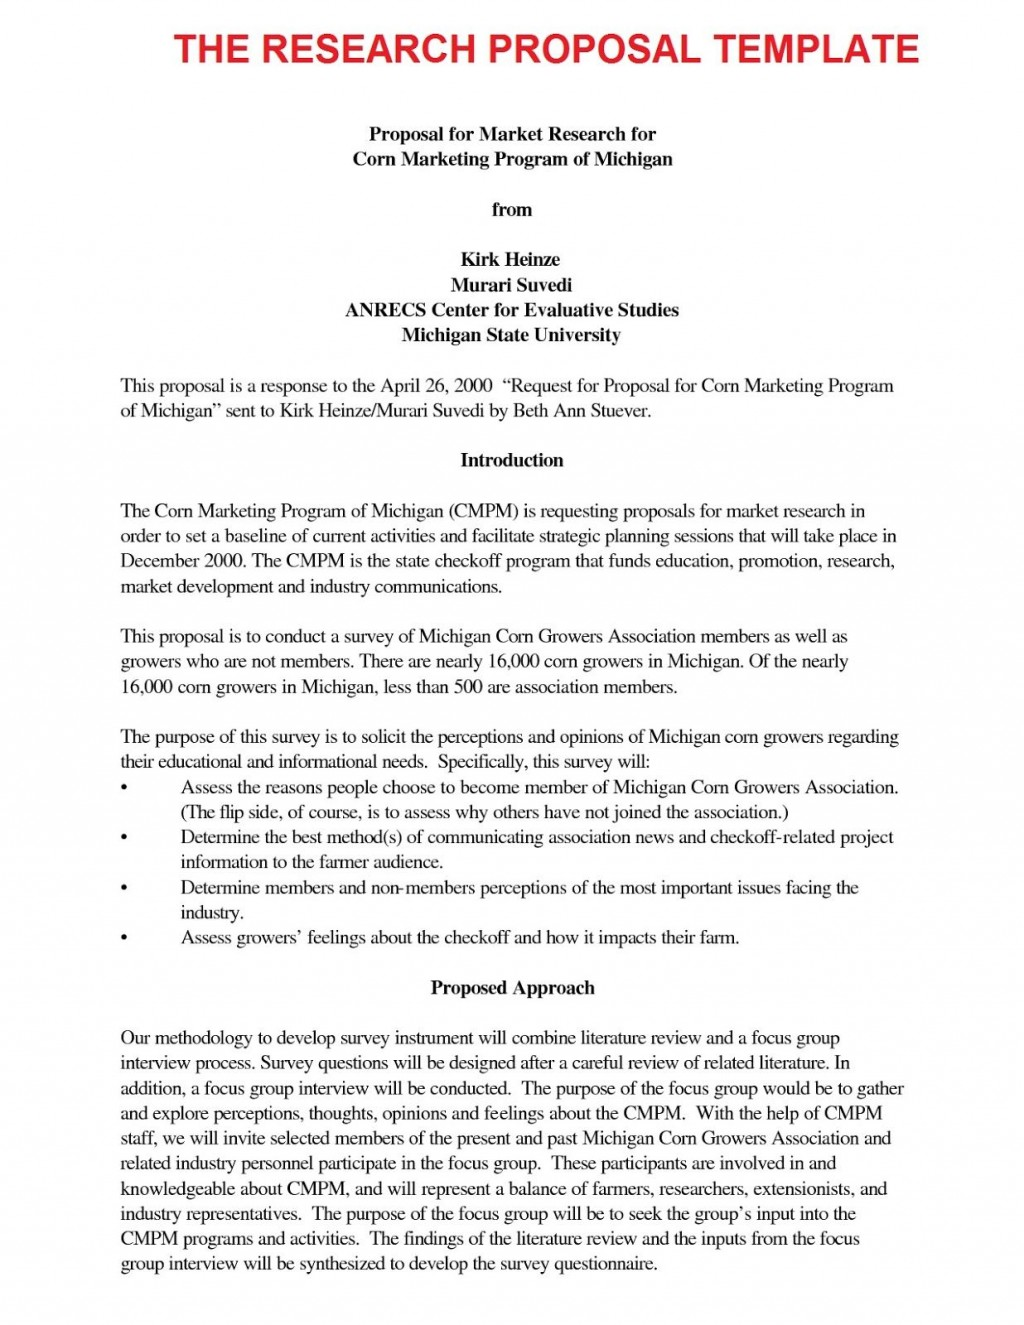 007 Cite Research Paper Generator Top Chicago Style A Harvard Online Large